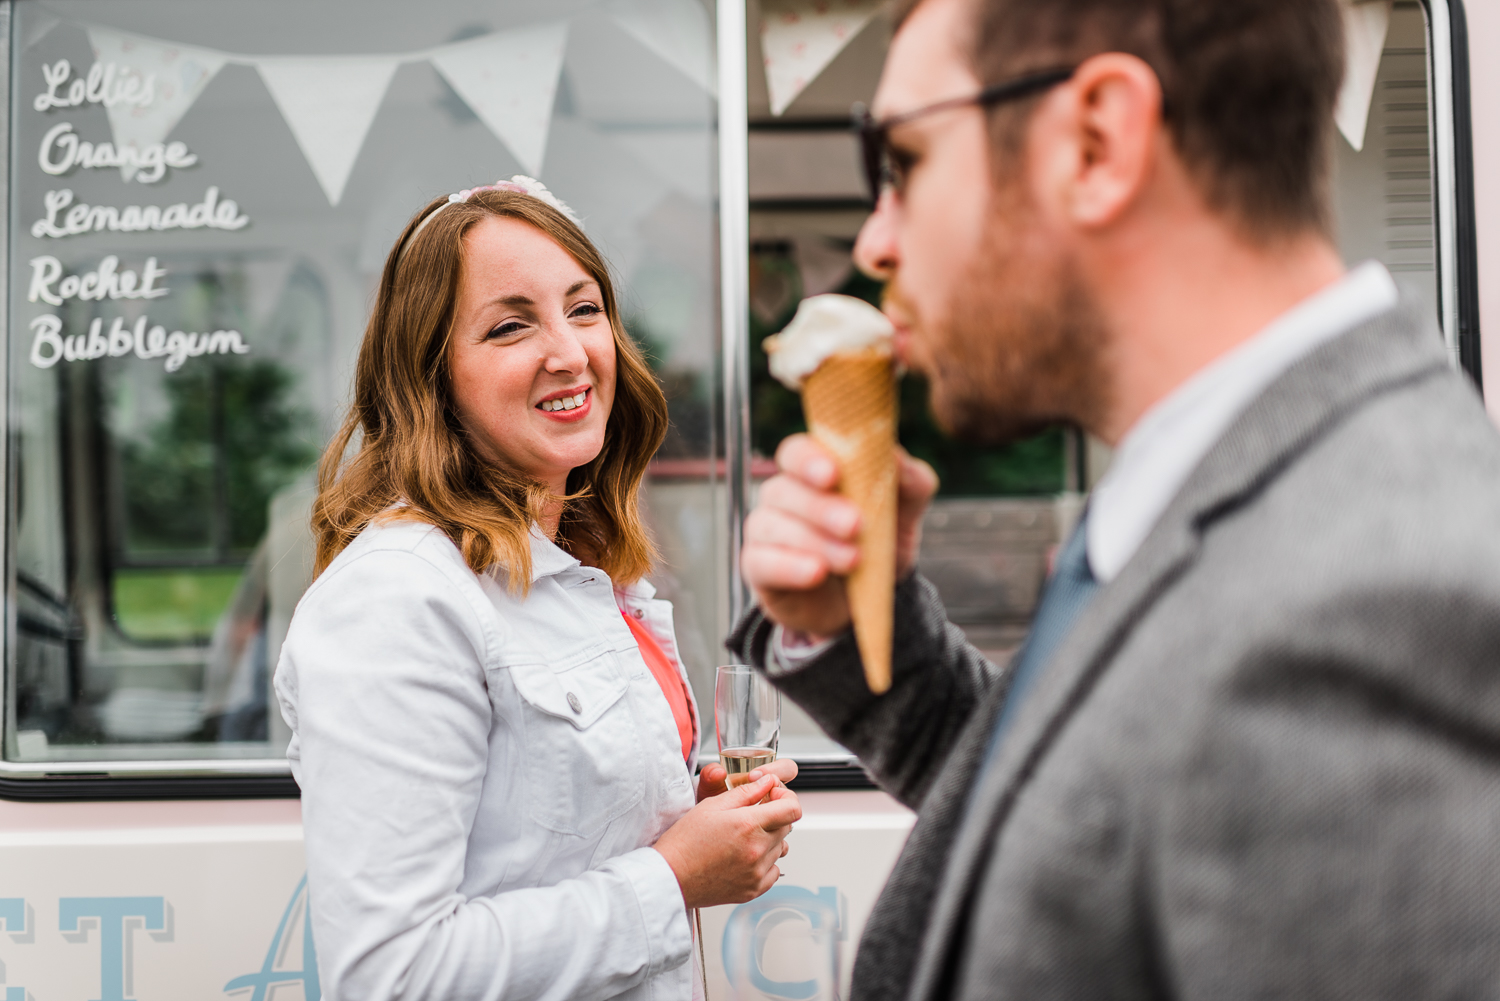 Male guest eating ice-cream while a woman watches on at a festiv